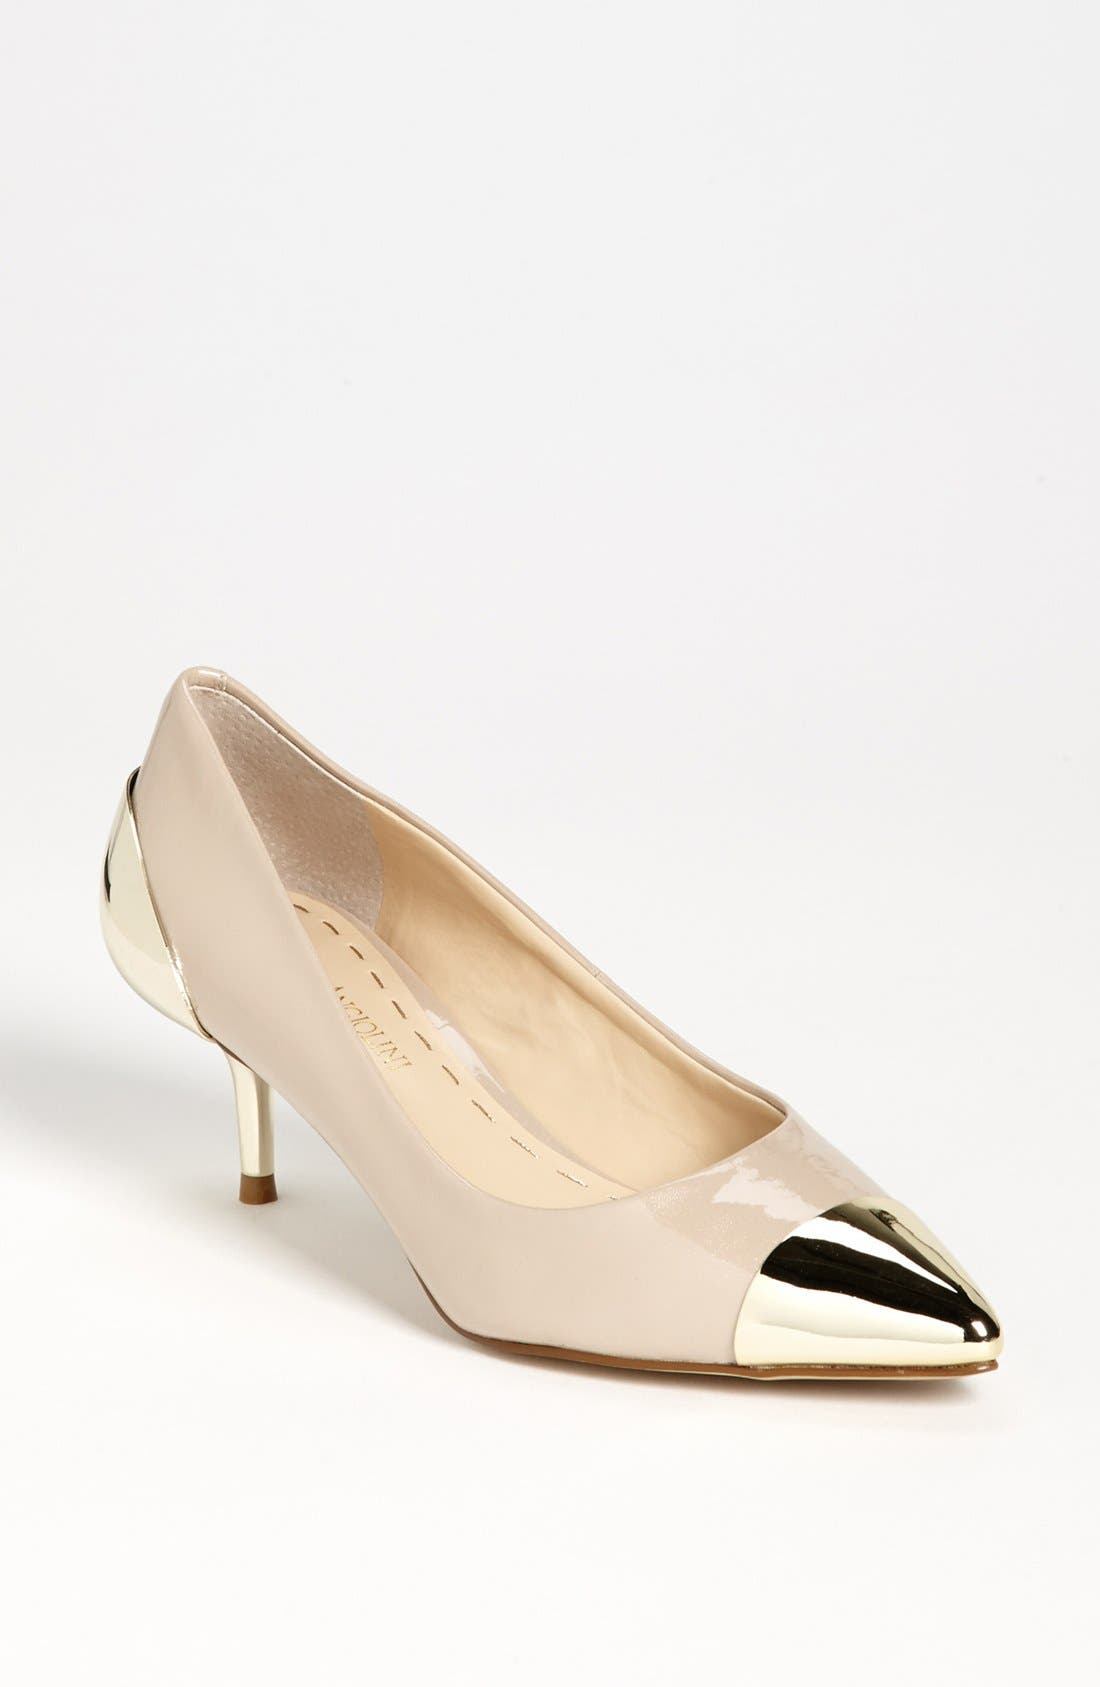 Alternate Image 1 Selected - Enzo Angiolini 'Casiano' Pump